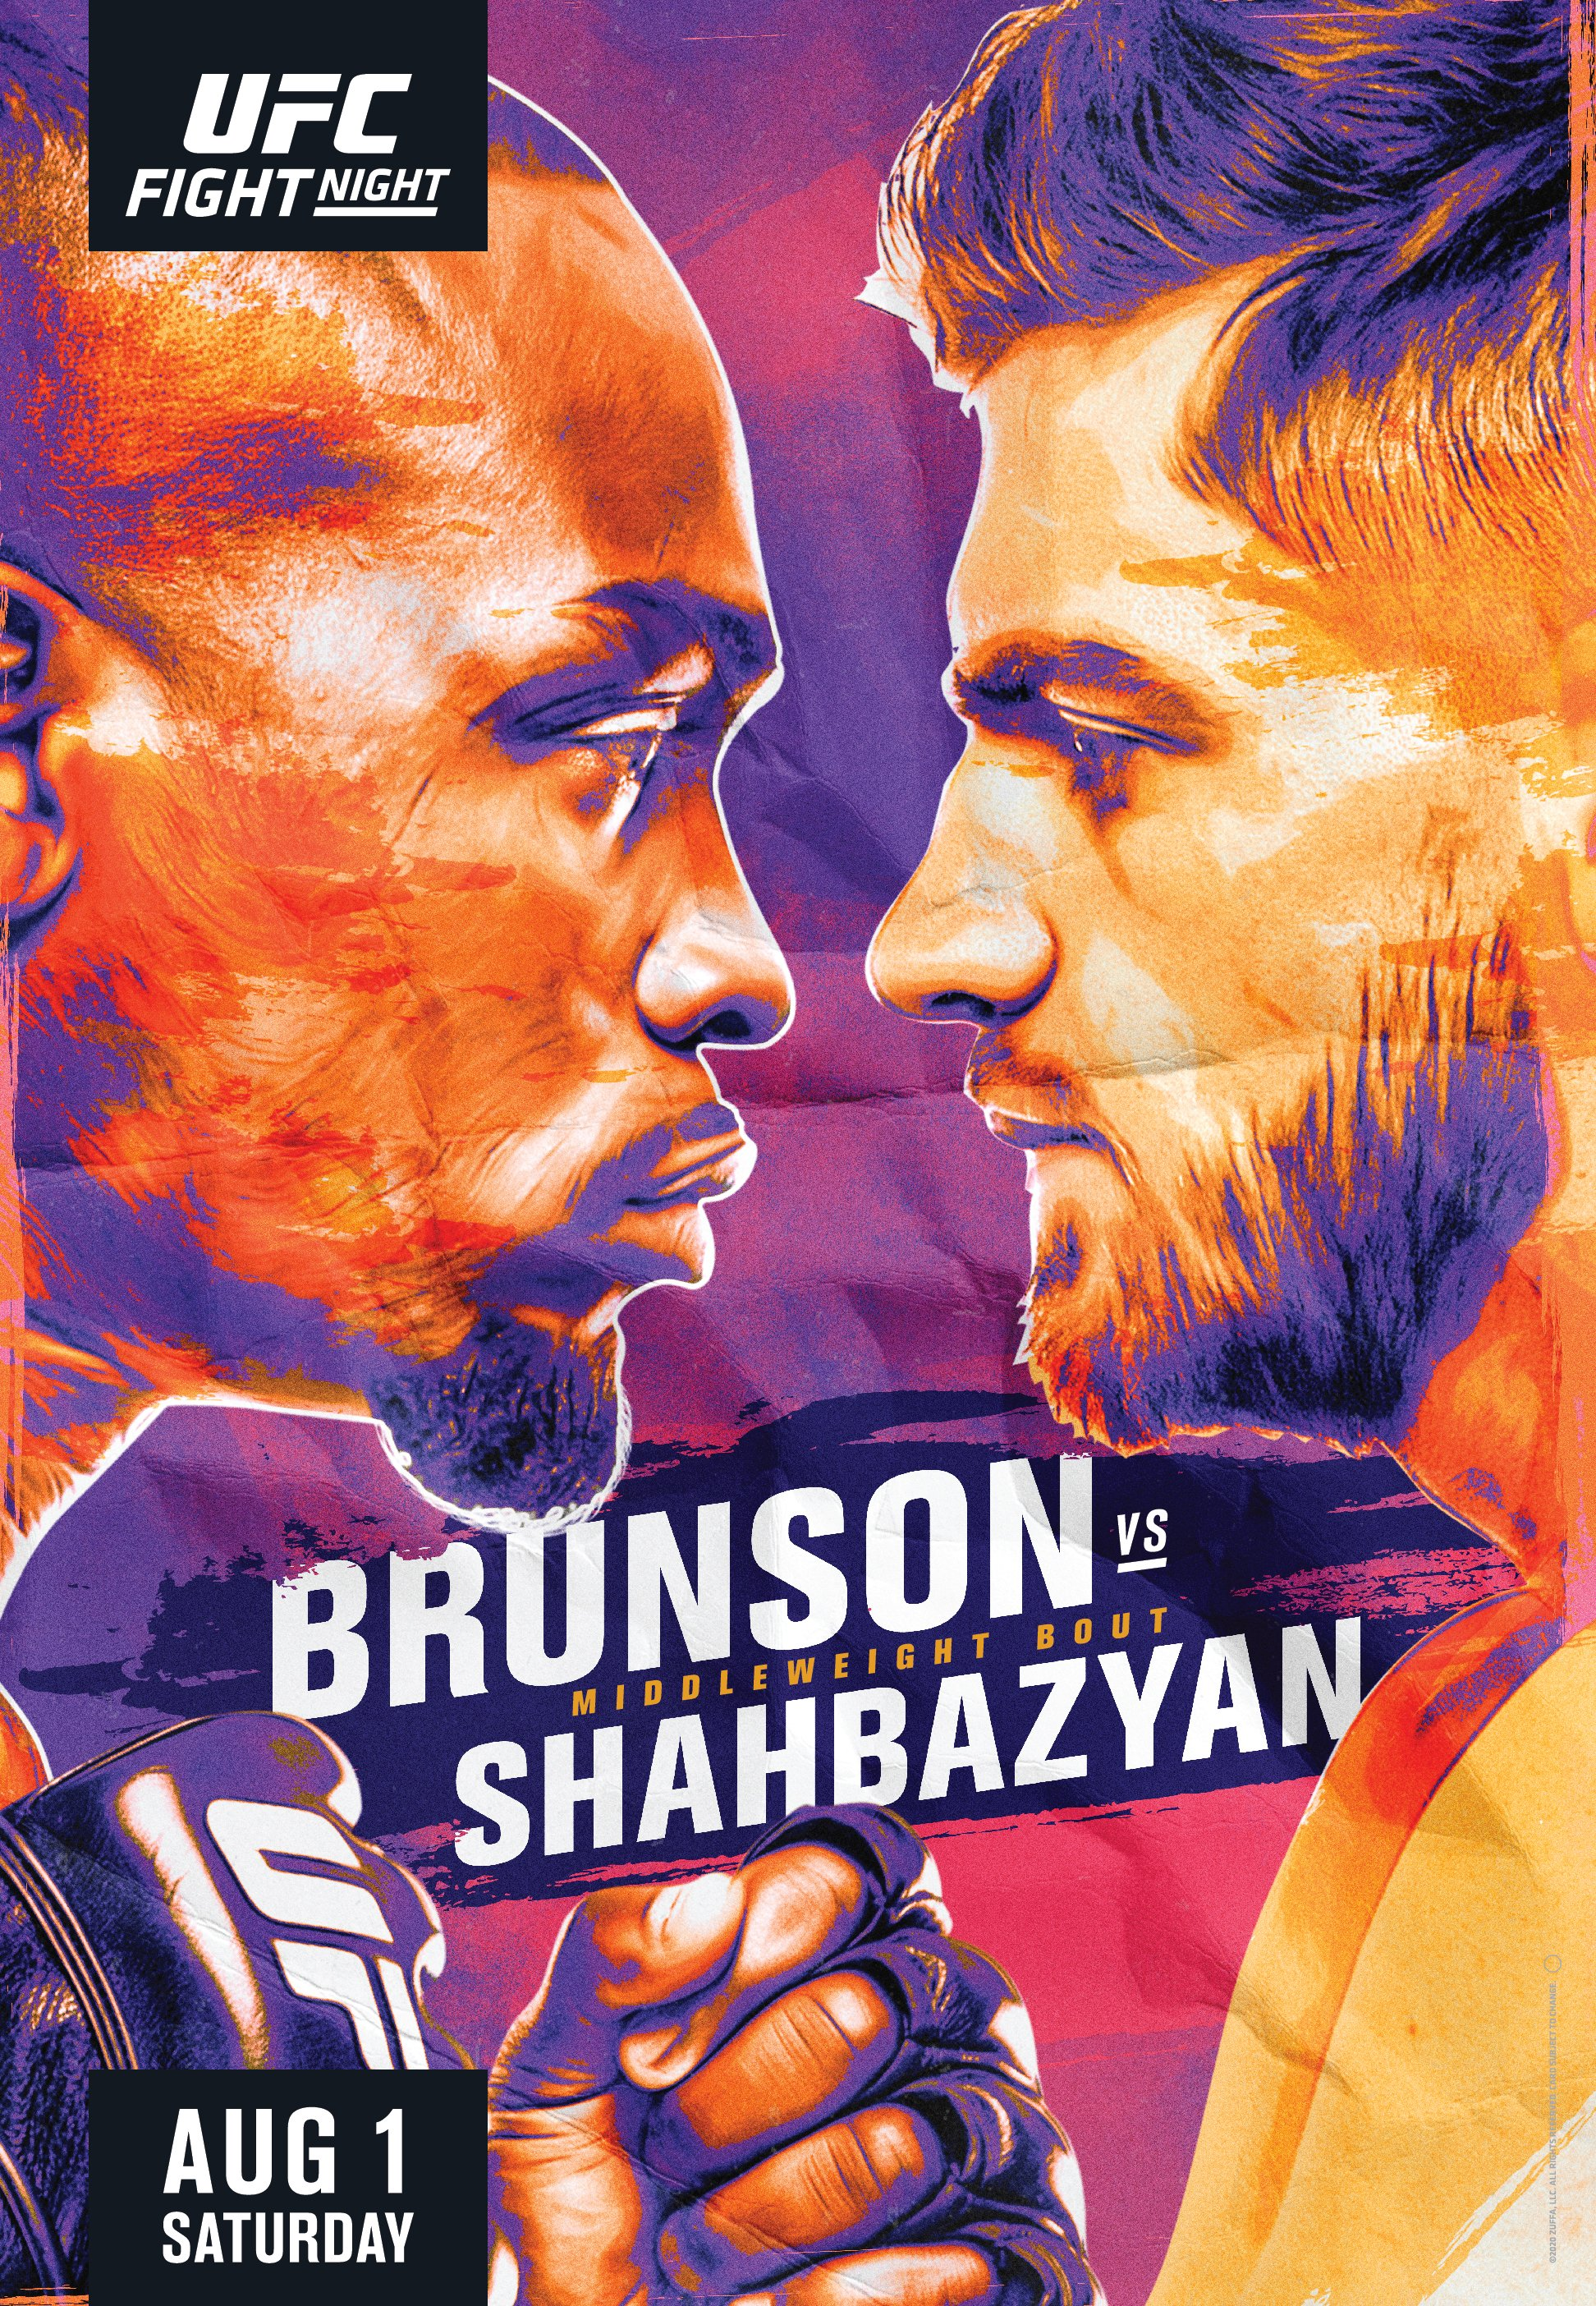 UFC Fight Night: Brunson vs. Shahbazyan Live Stream, Full Card ...